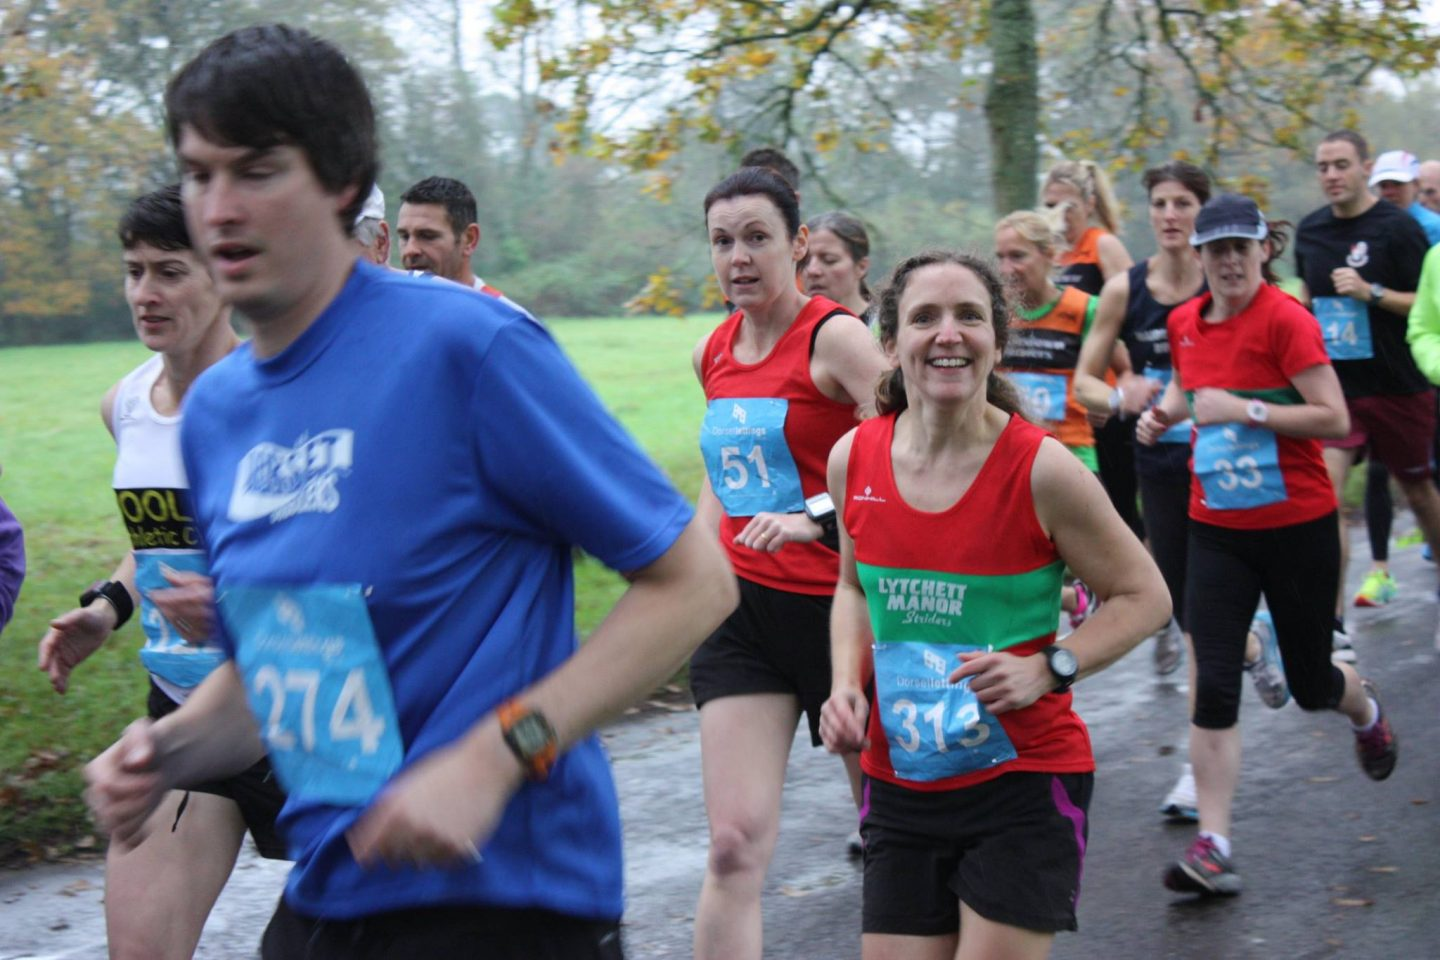 A group of runners in multicolored tee shirts and vests with Zoe in a red vest with a green band and a blue bib number (313). She smiles as she looks directly at the camera, despite this being only a few months after heartbreak and empty nest.